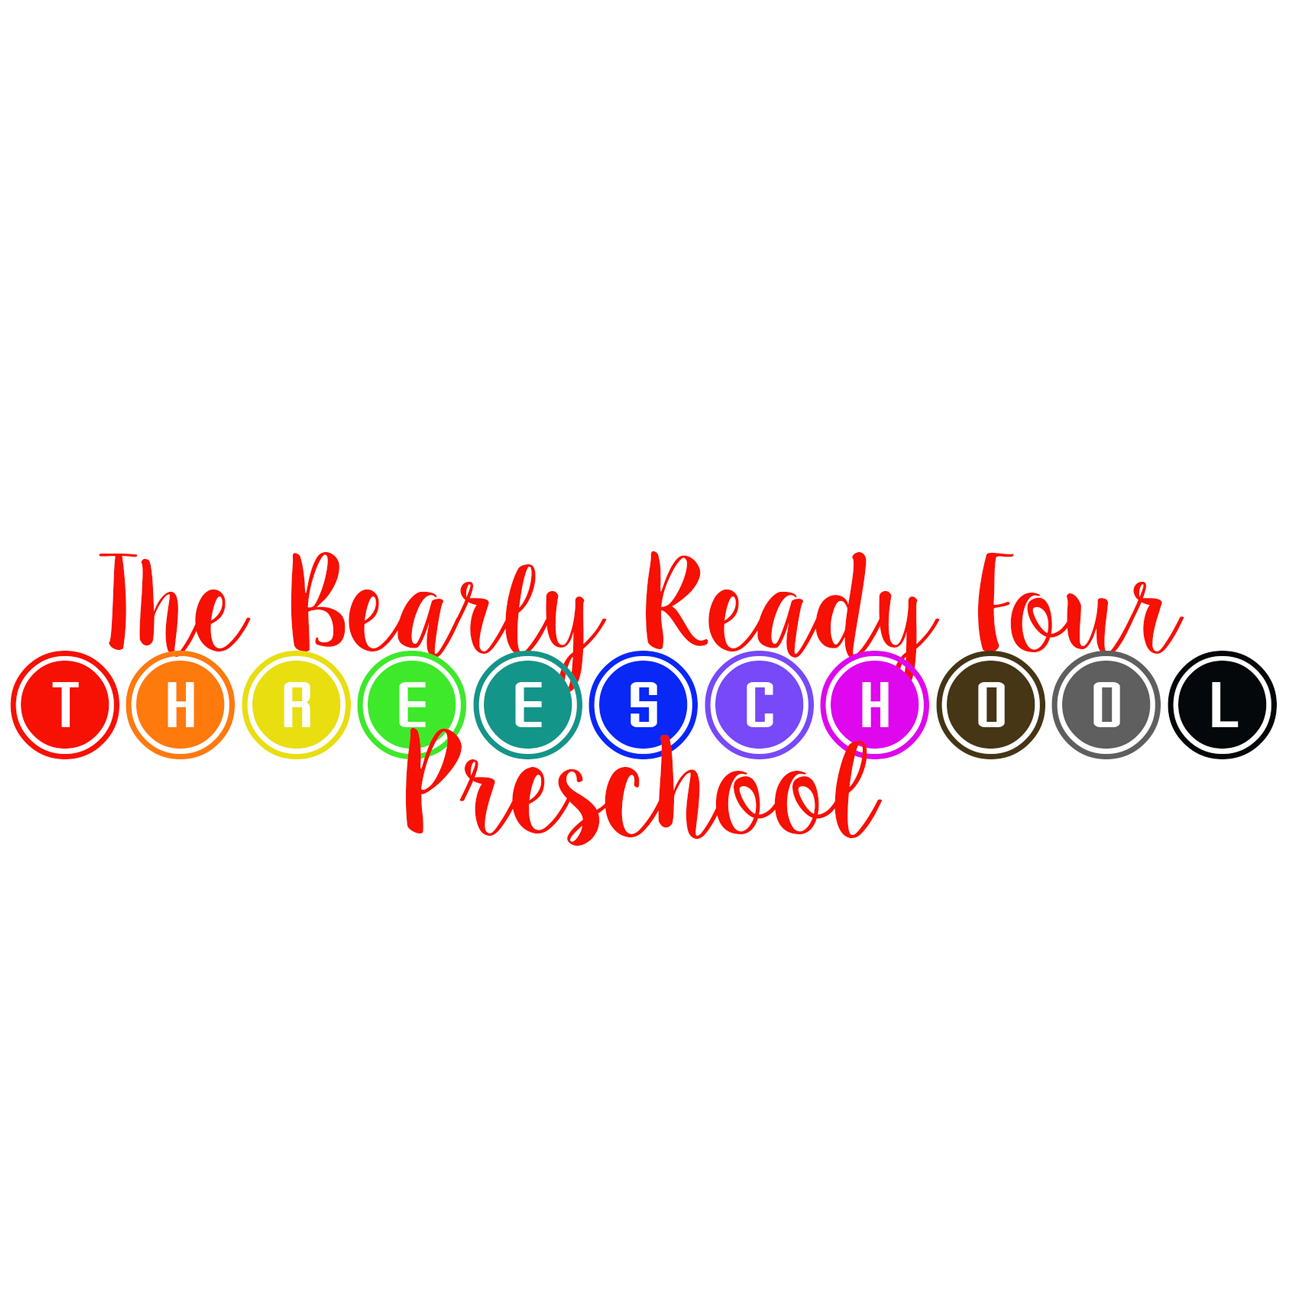 The Bearly Ready Four-Threeschool Preschool